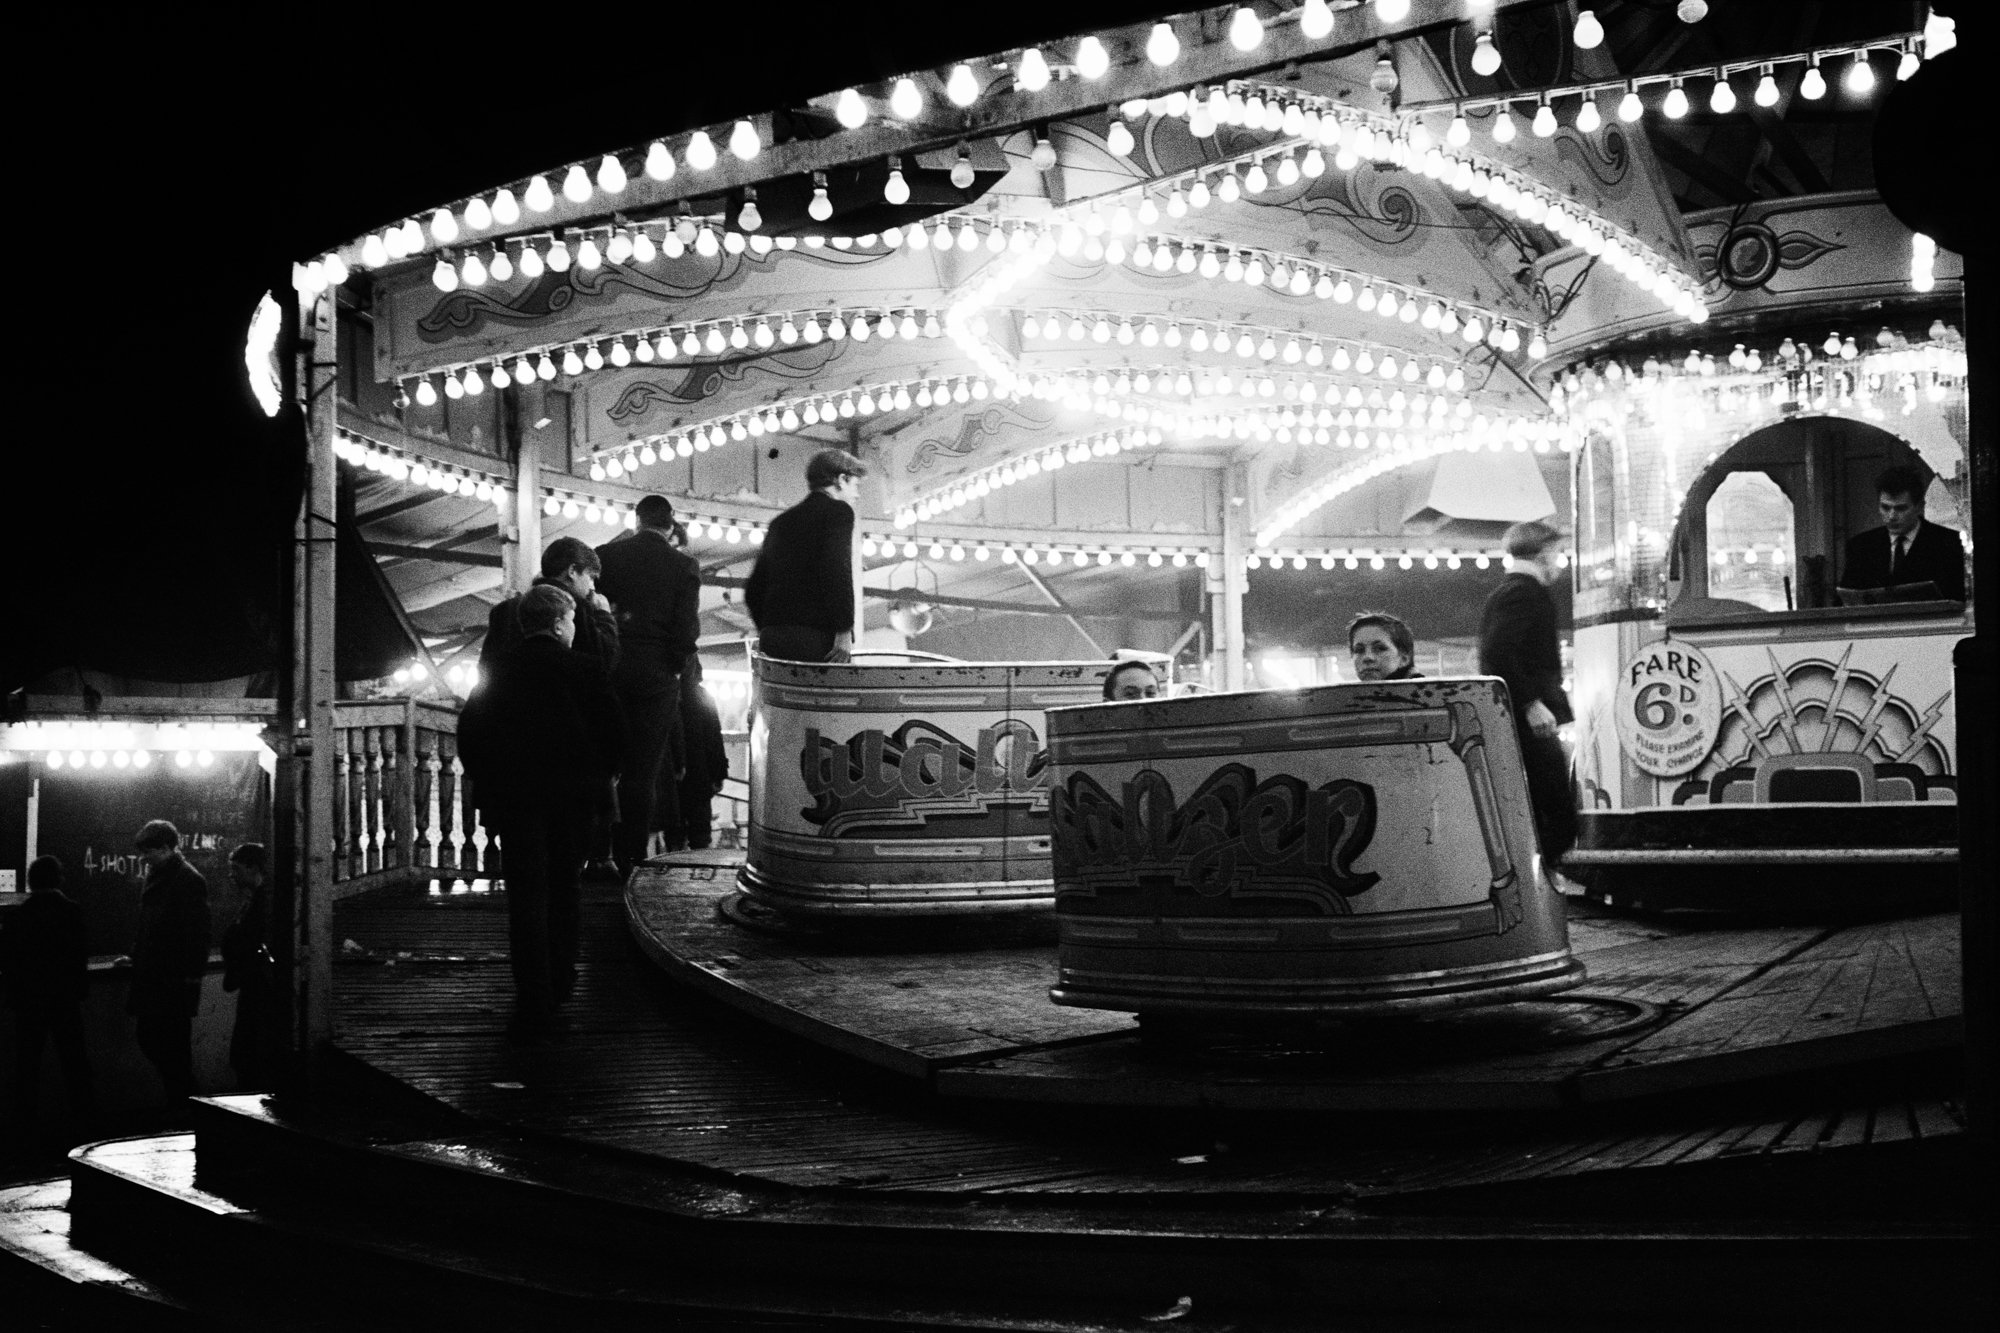 LONDON LIFE - Mighty Waltzer - Elephant and Castle - 1952